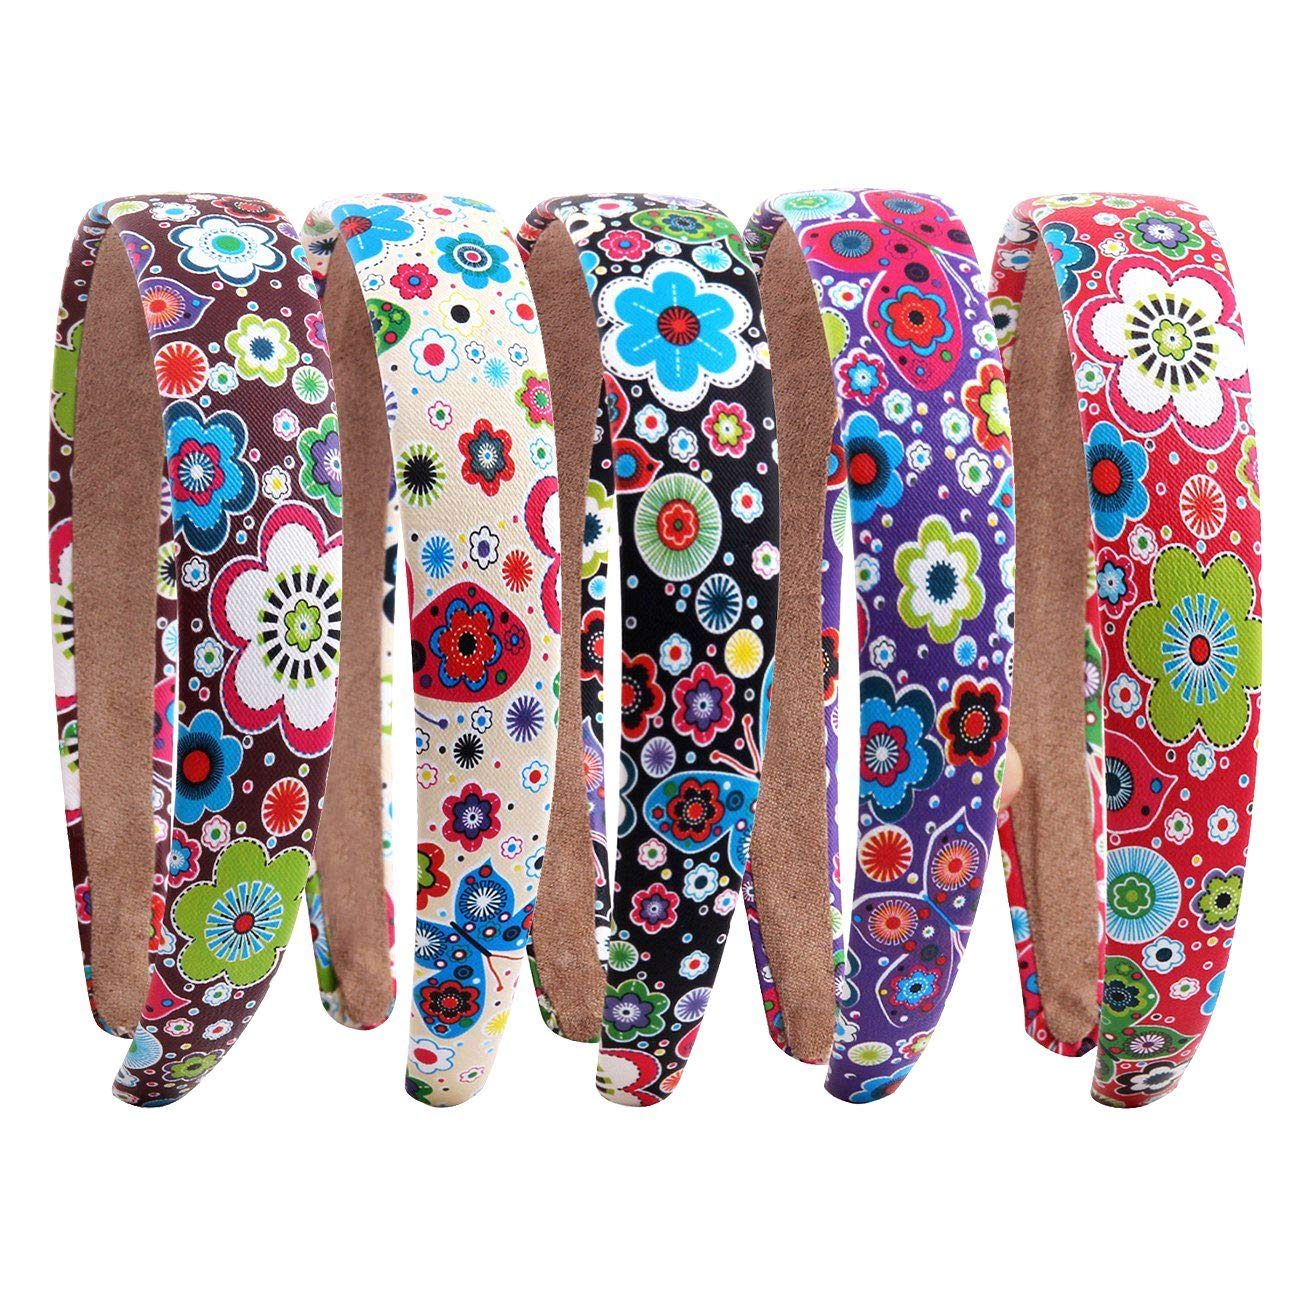 Candygirl 2.5 CM Alice Bands Set of 5 Butterfly Flower Boho Wide Headbands Woman Girl's Hair Bands for Daywear Festival